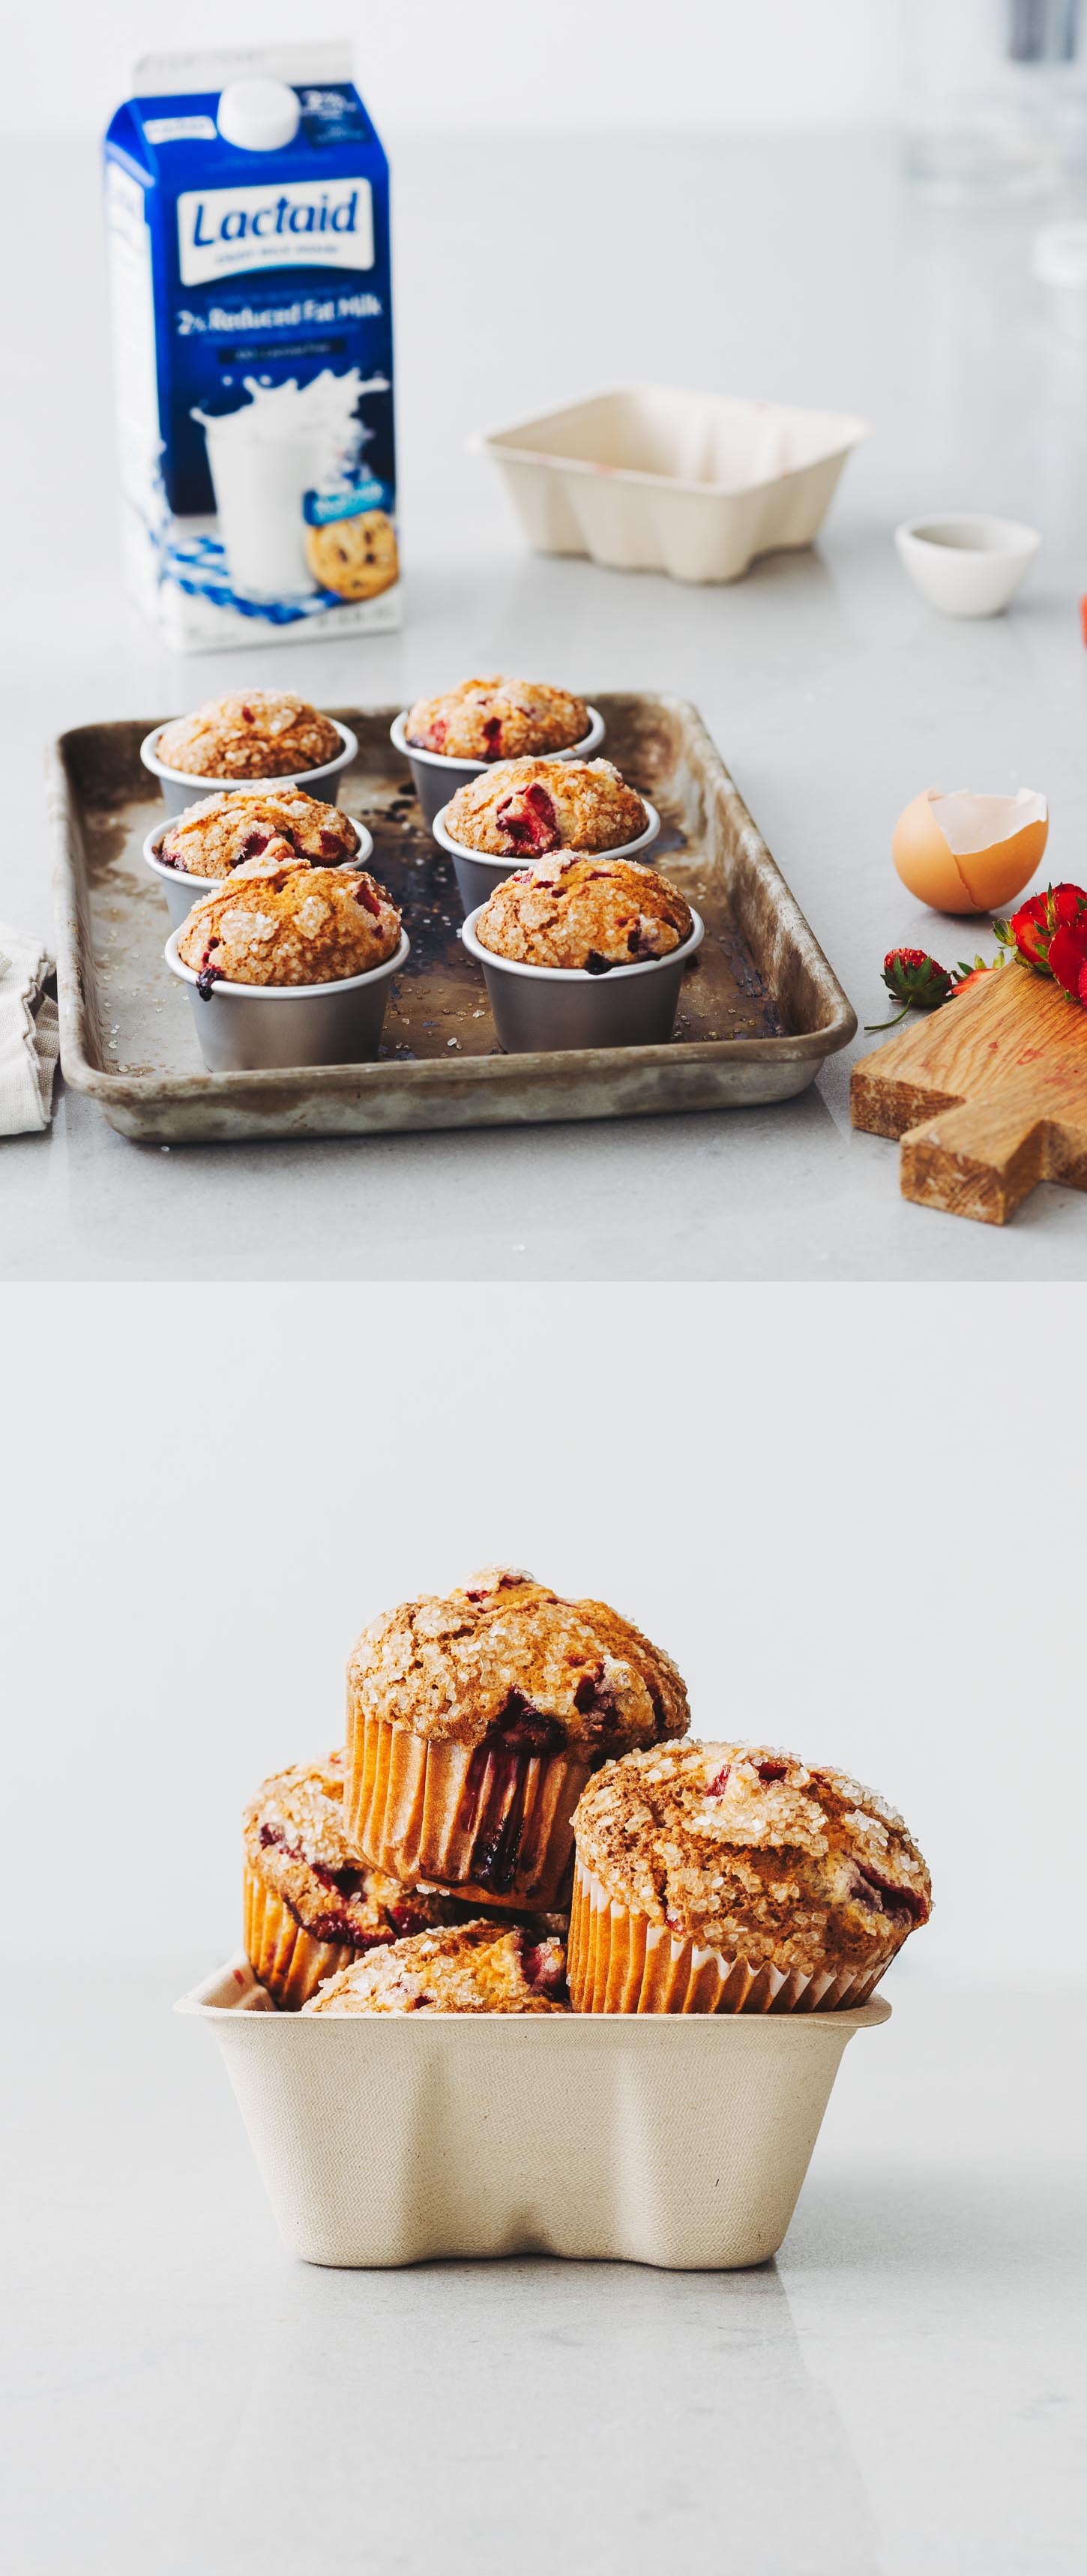 #ad Grab and go with all the flavors of early summer in a muffin bursting with strawberries. Sky-high bakery strawberry muffins made lactose-free with Lactaid milk! brought these guys  #milkthemoments #lactosefree #muffins #baking #recipe